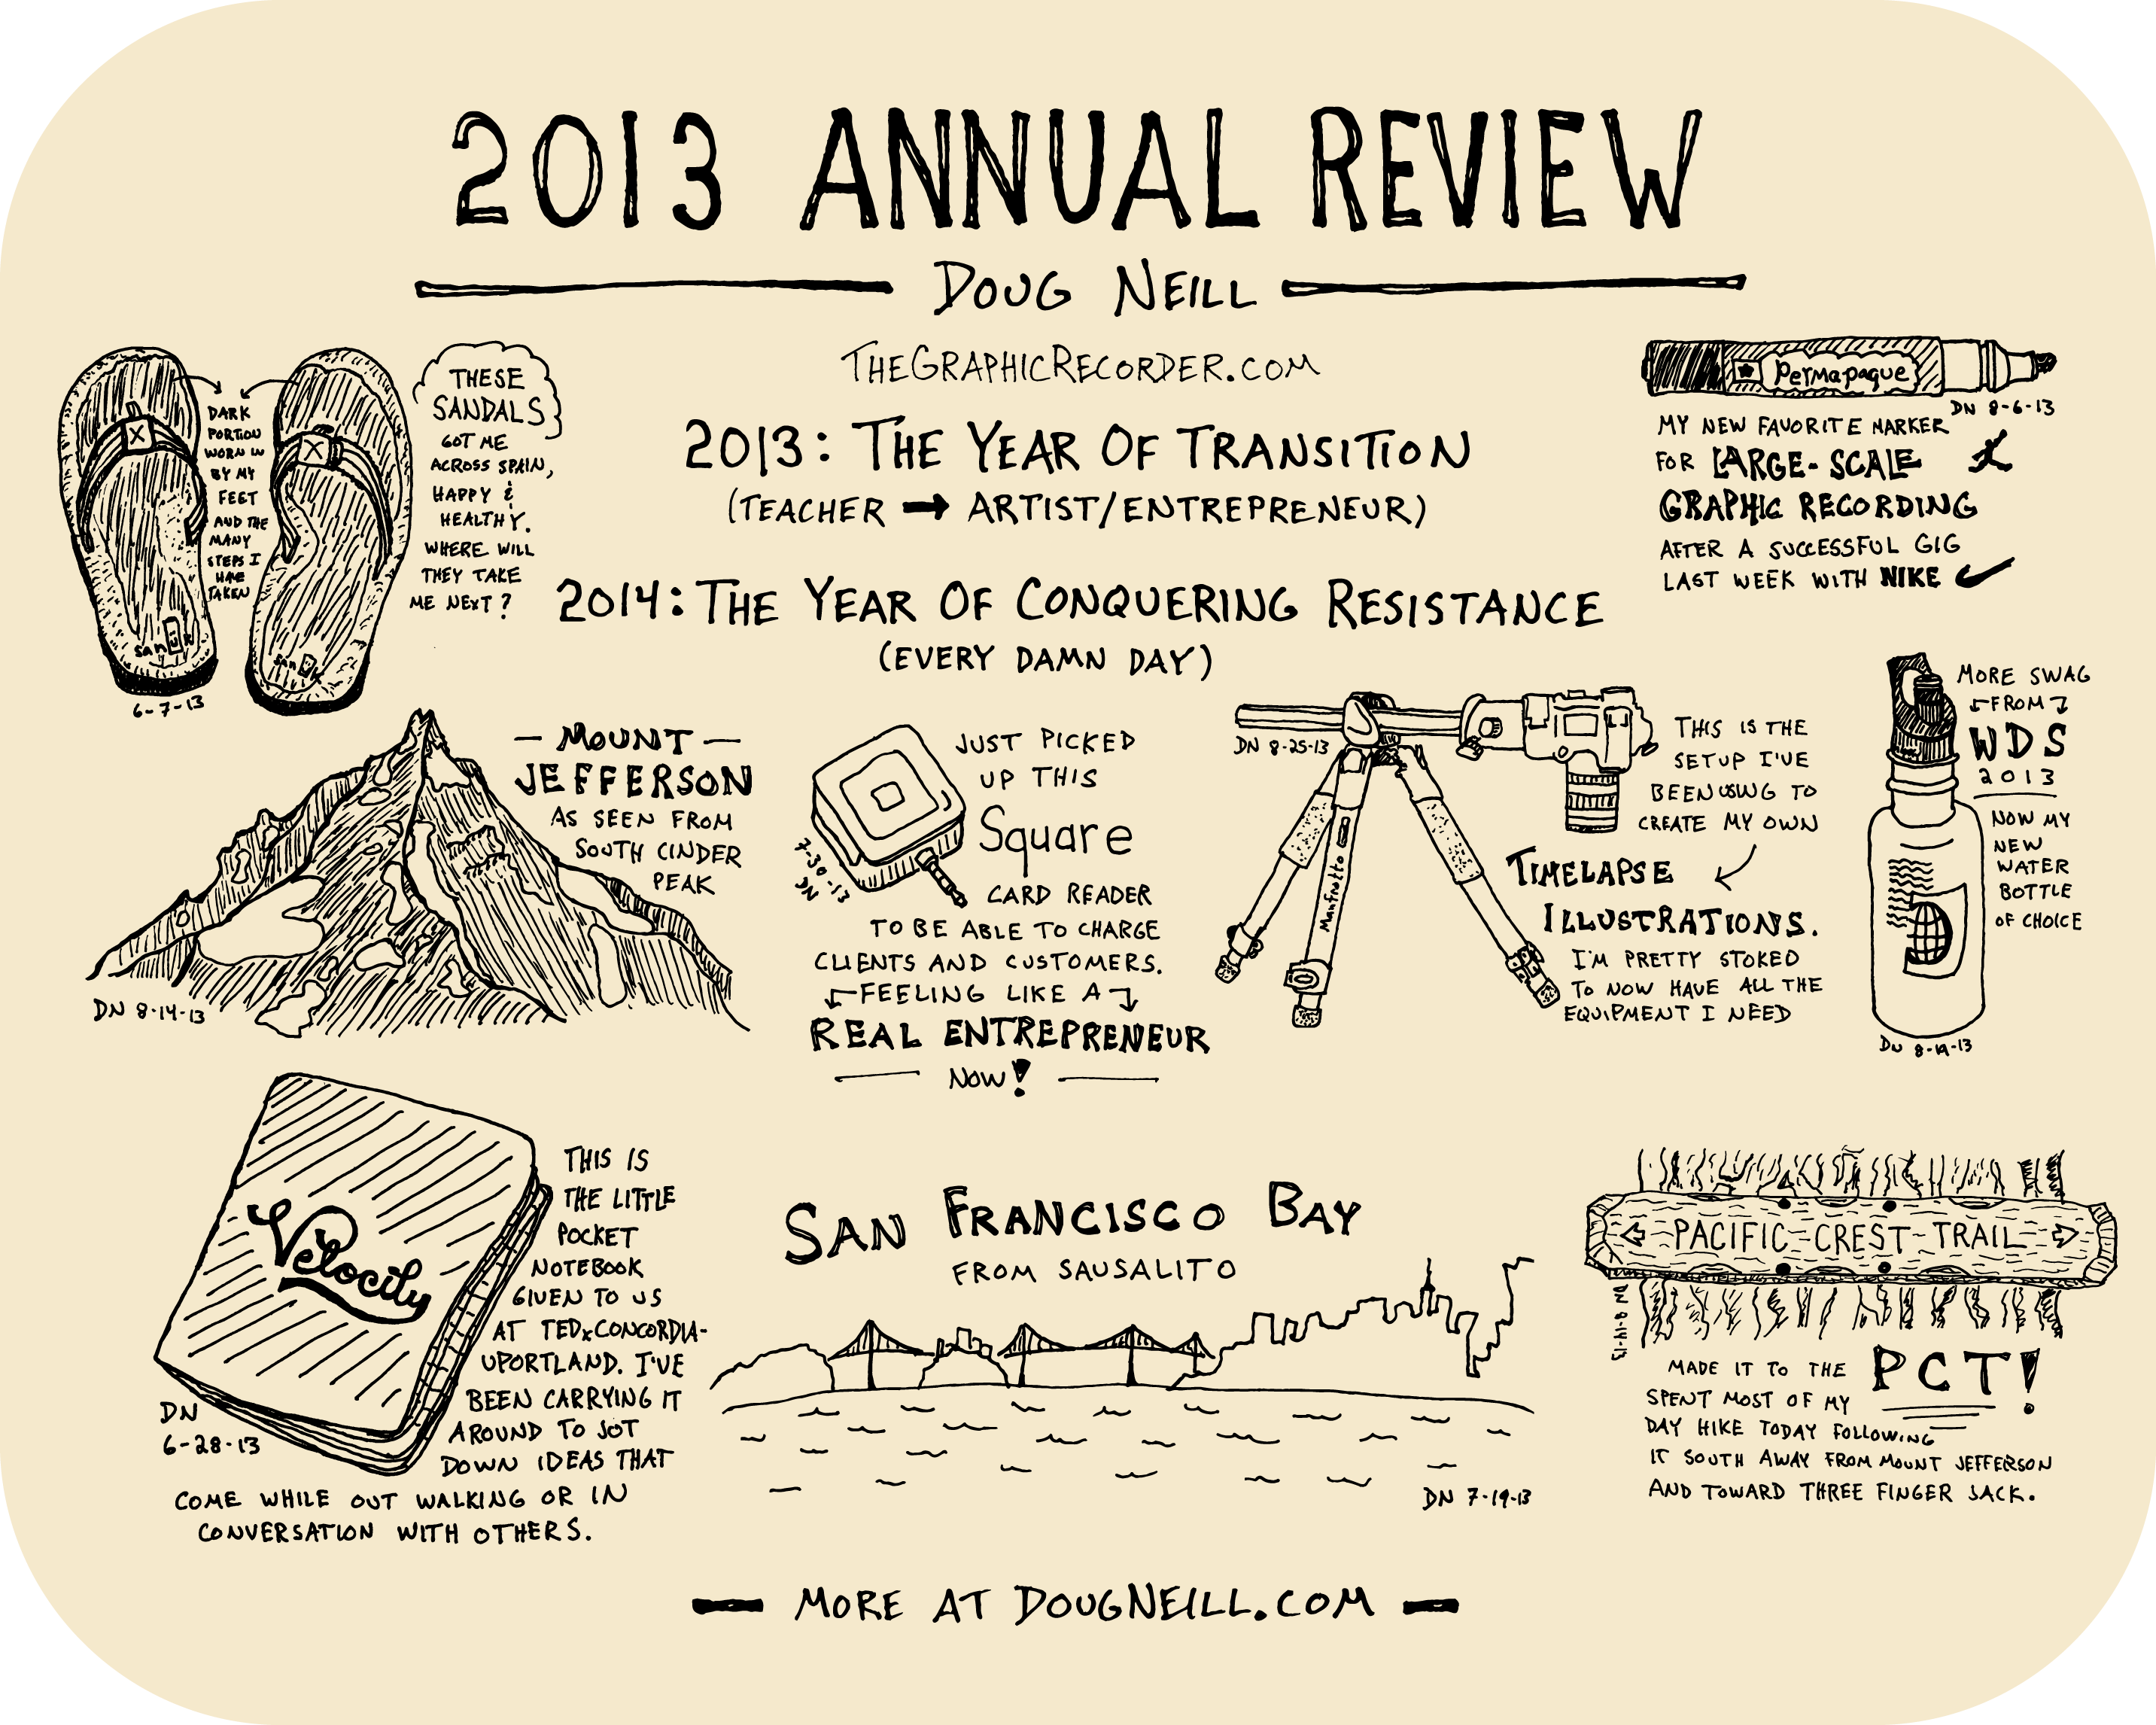 2013 Annual Review - doug neill - the graphic recorder - the year of transition - the year of conquering resistance